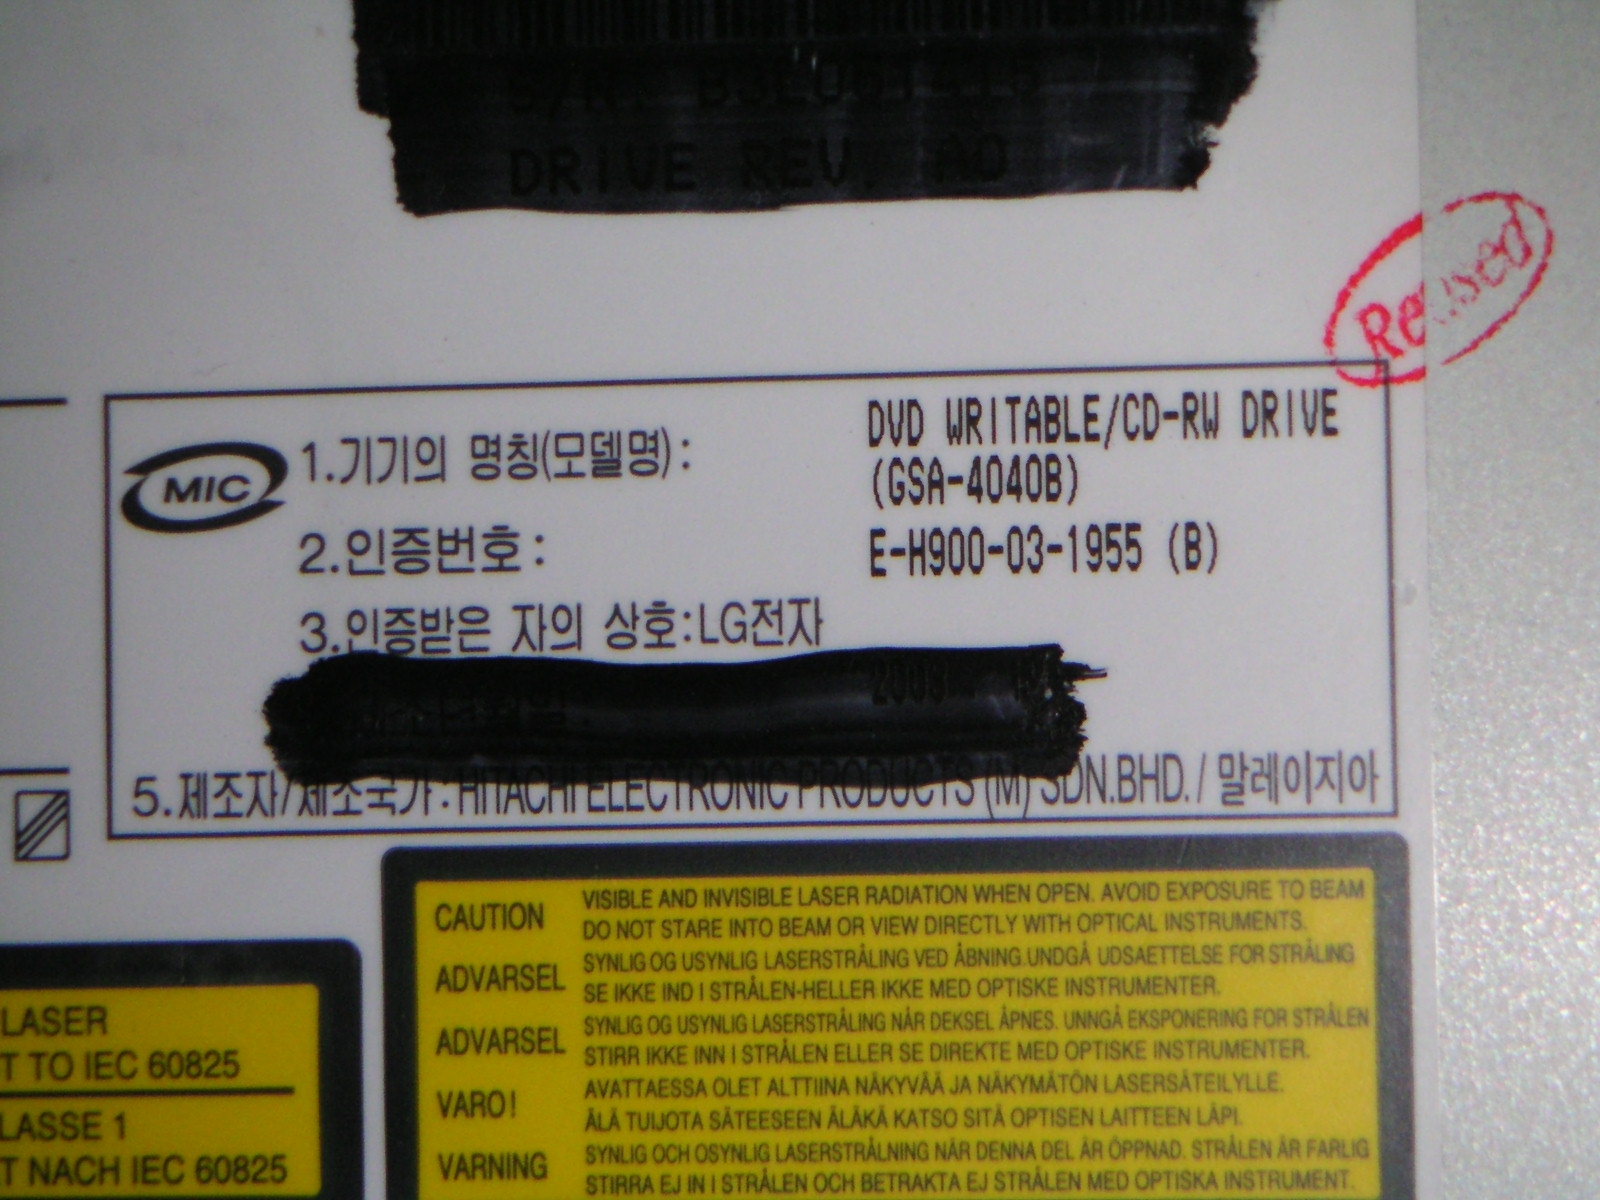 Gsa4040b_label2